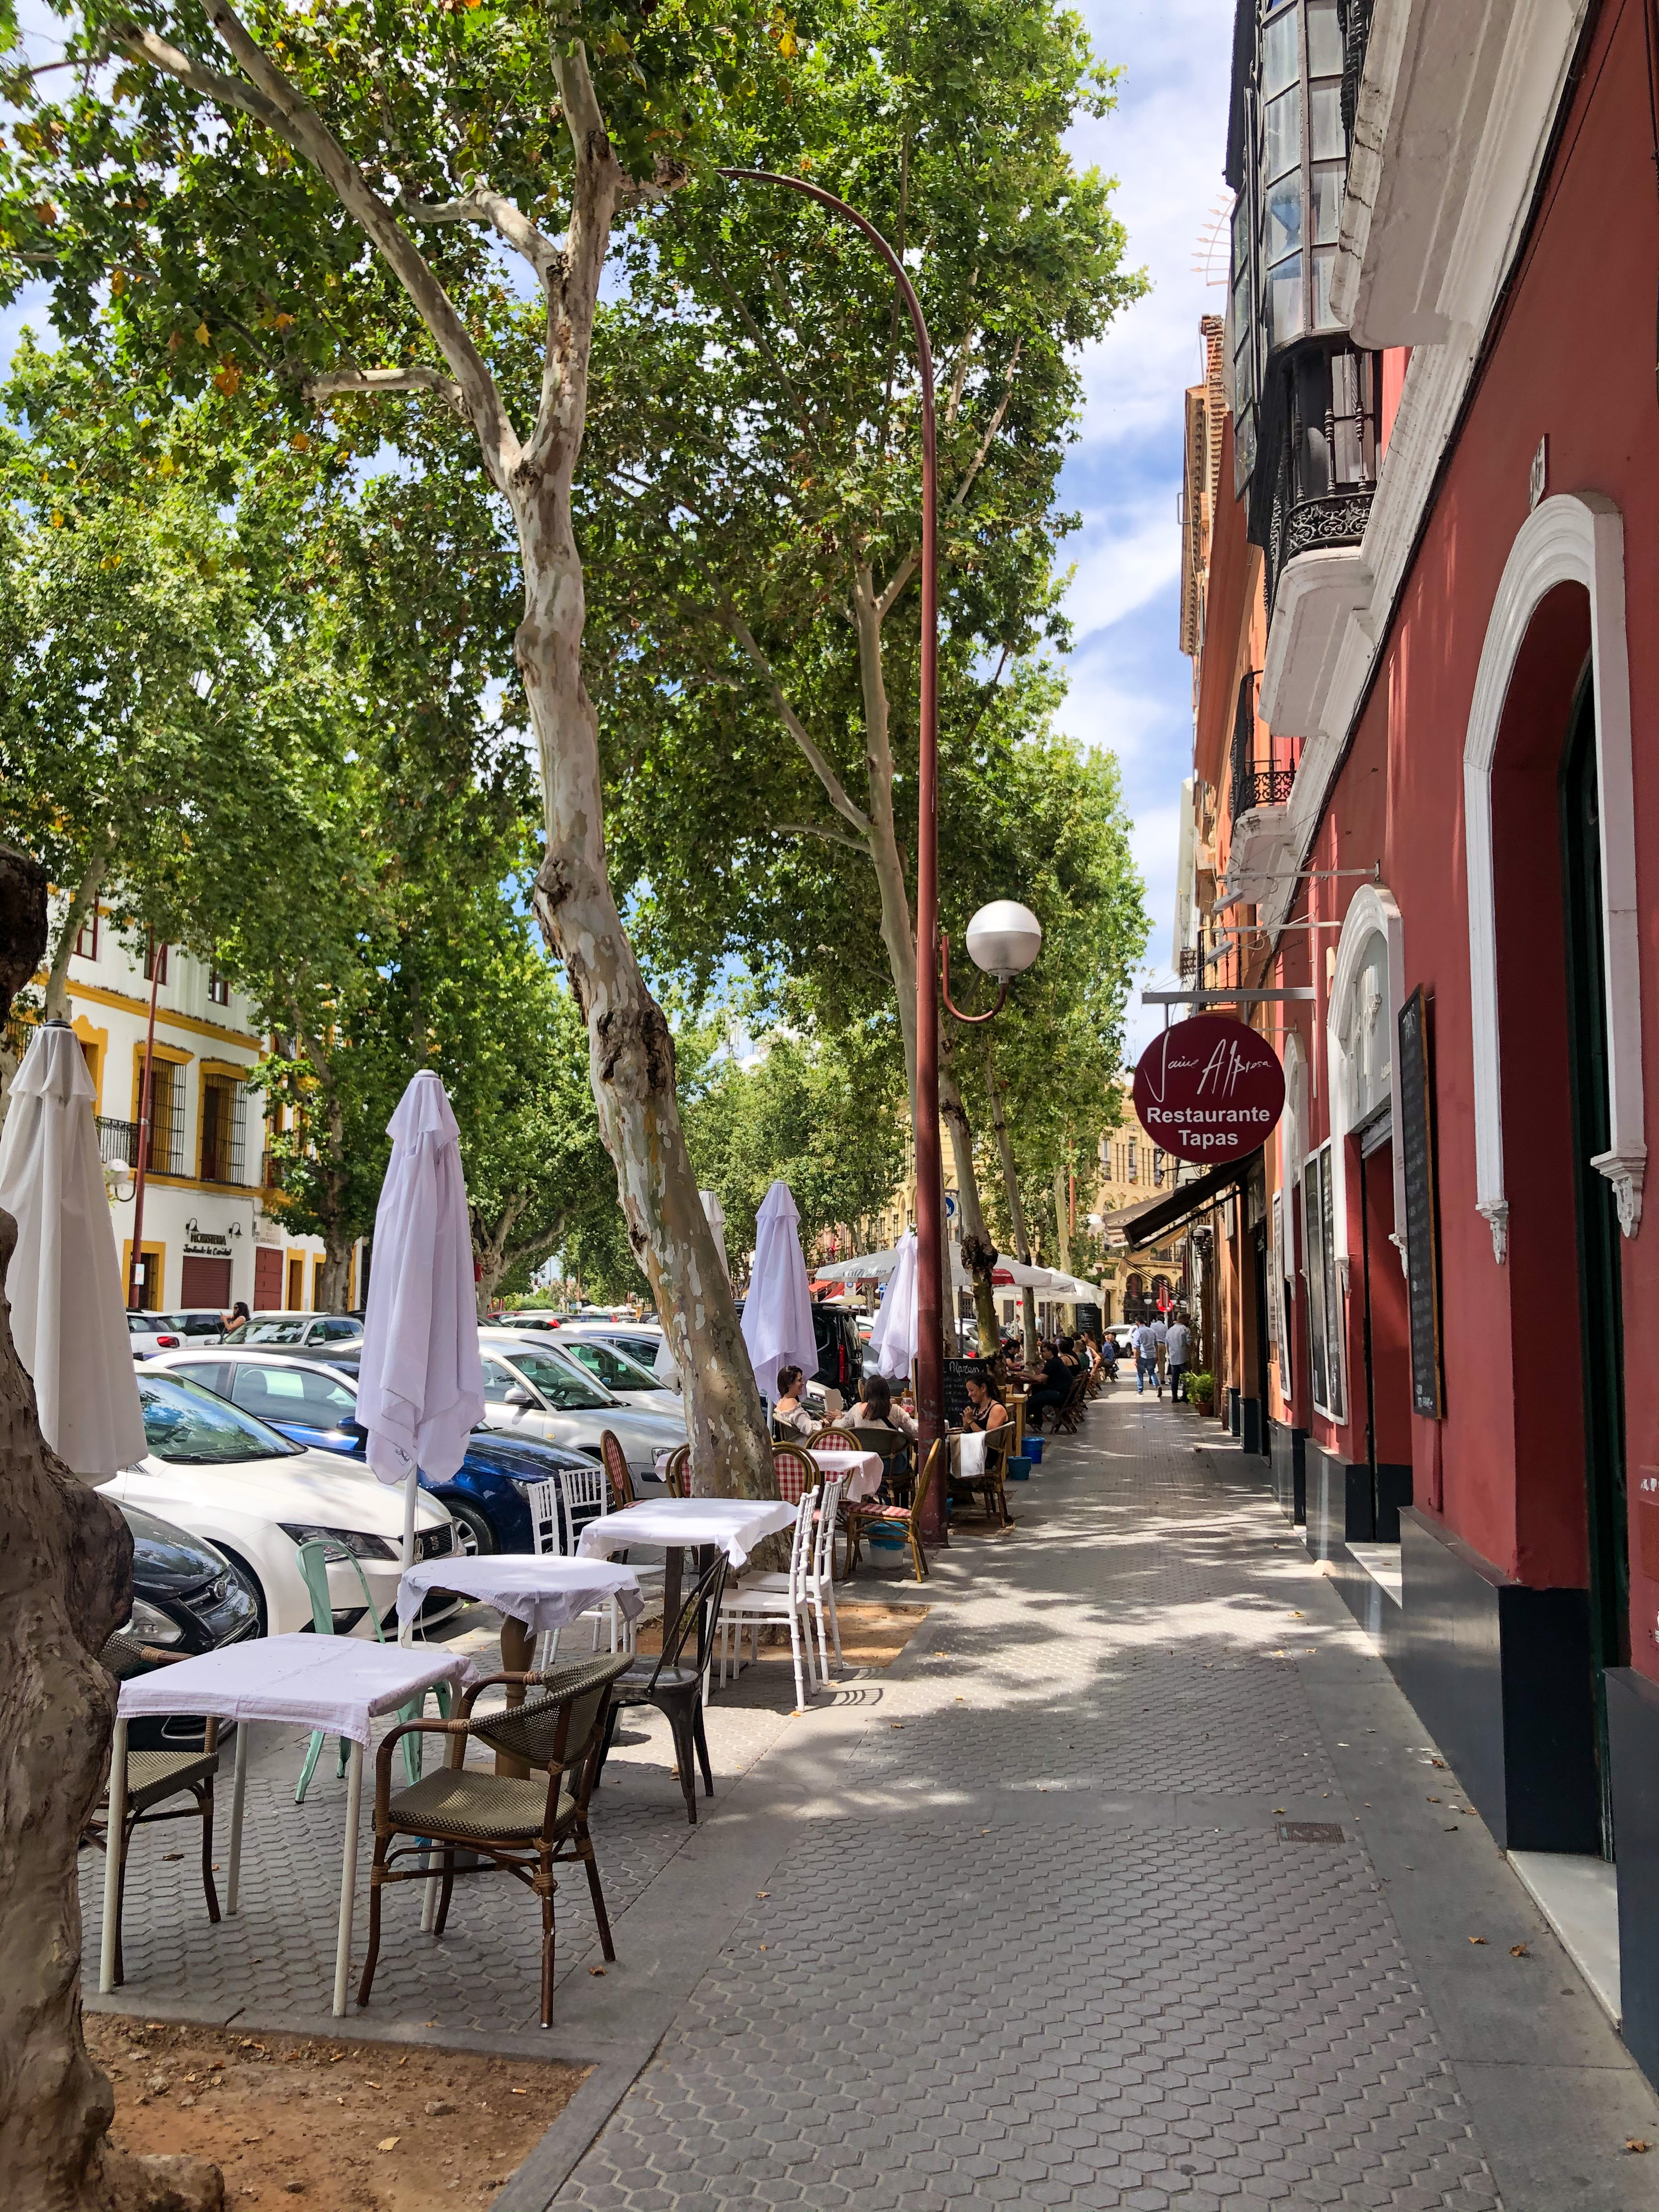 A sunny, cafe-lined street in Seville, Spain